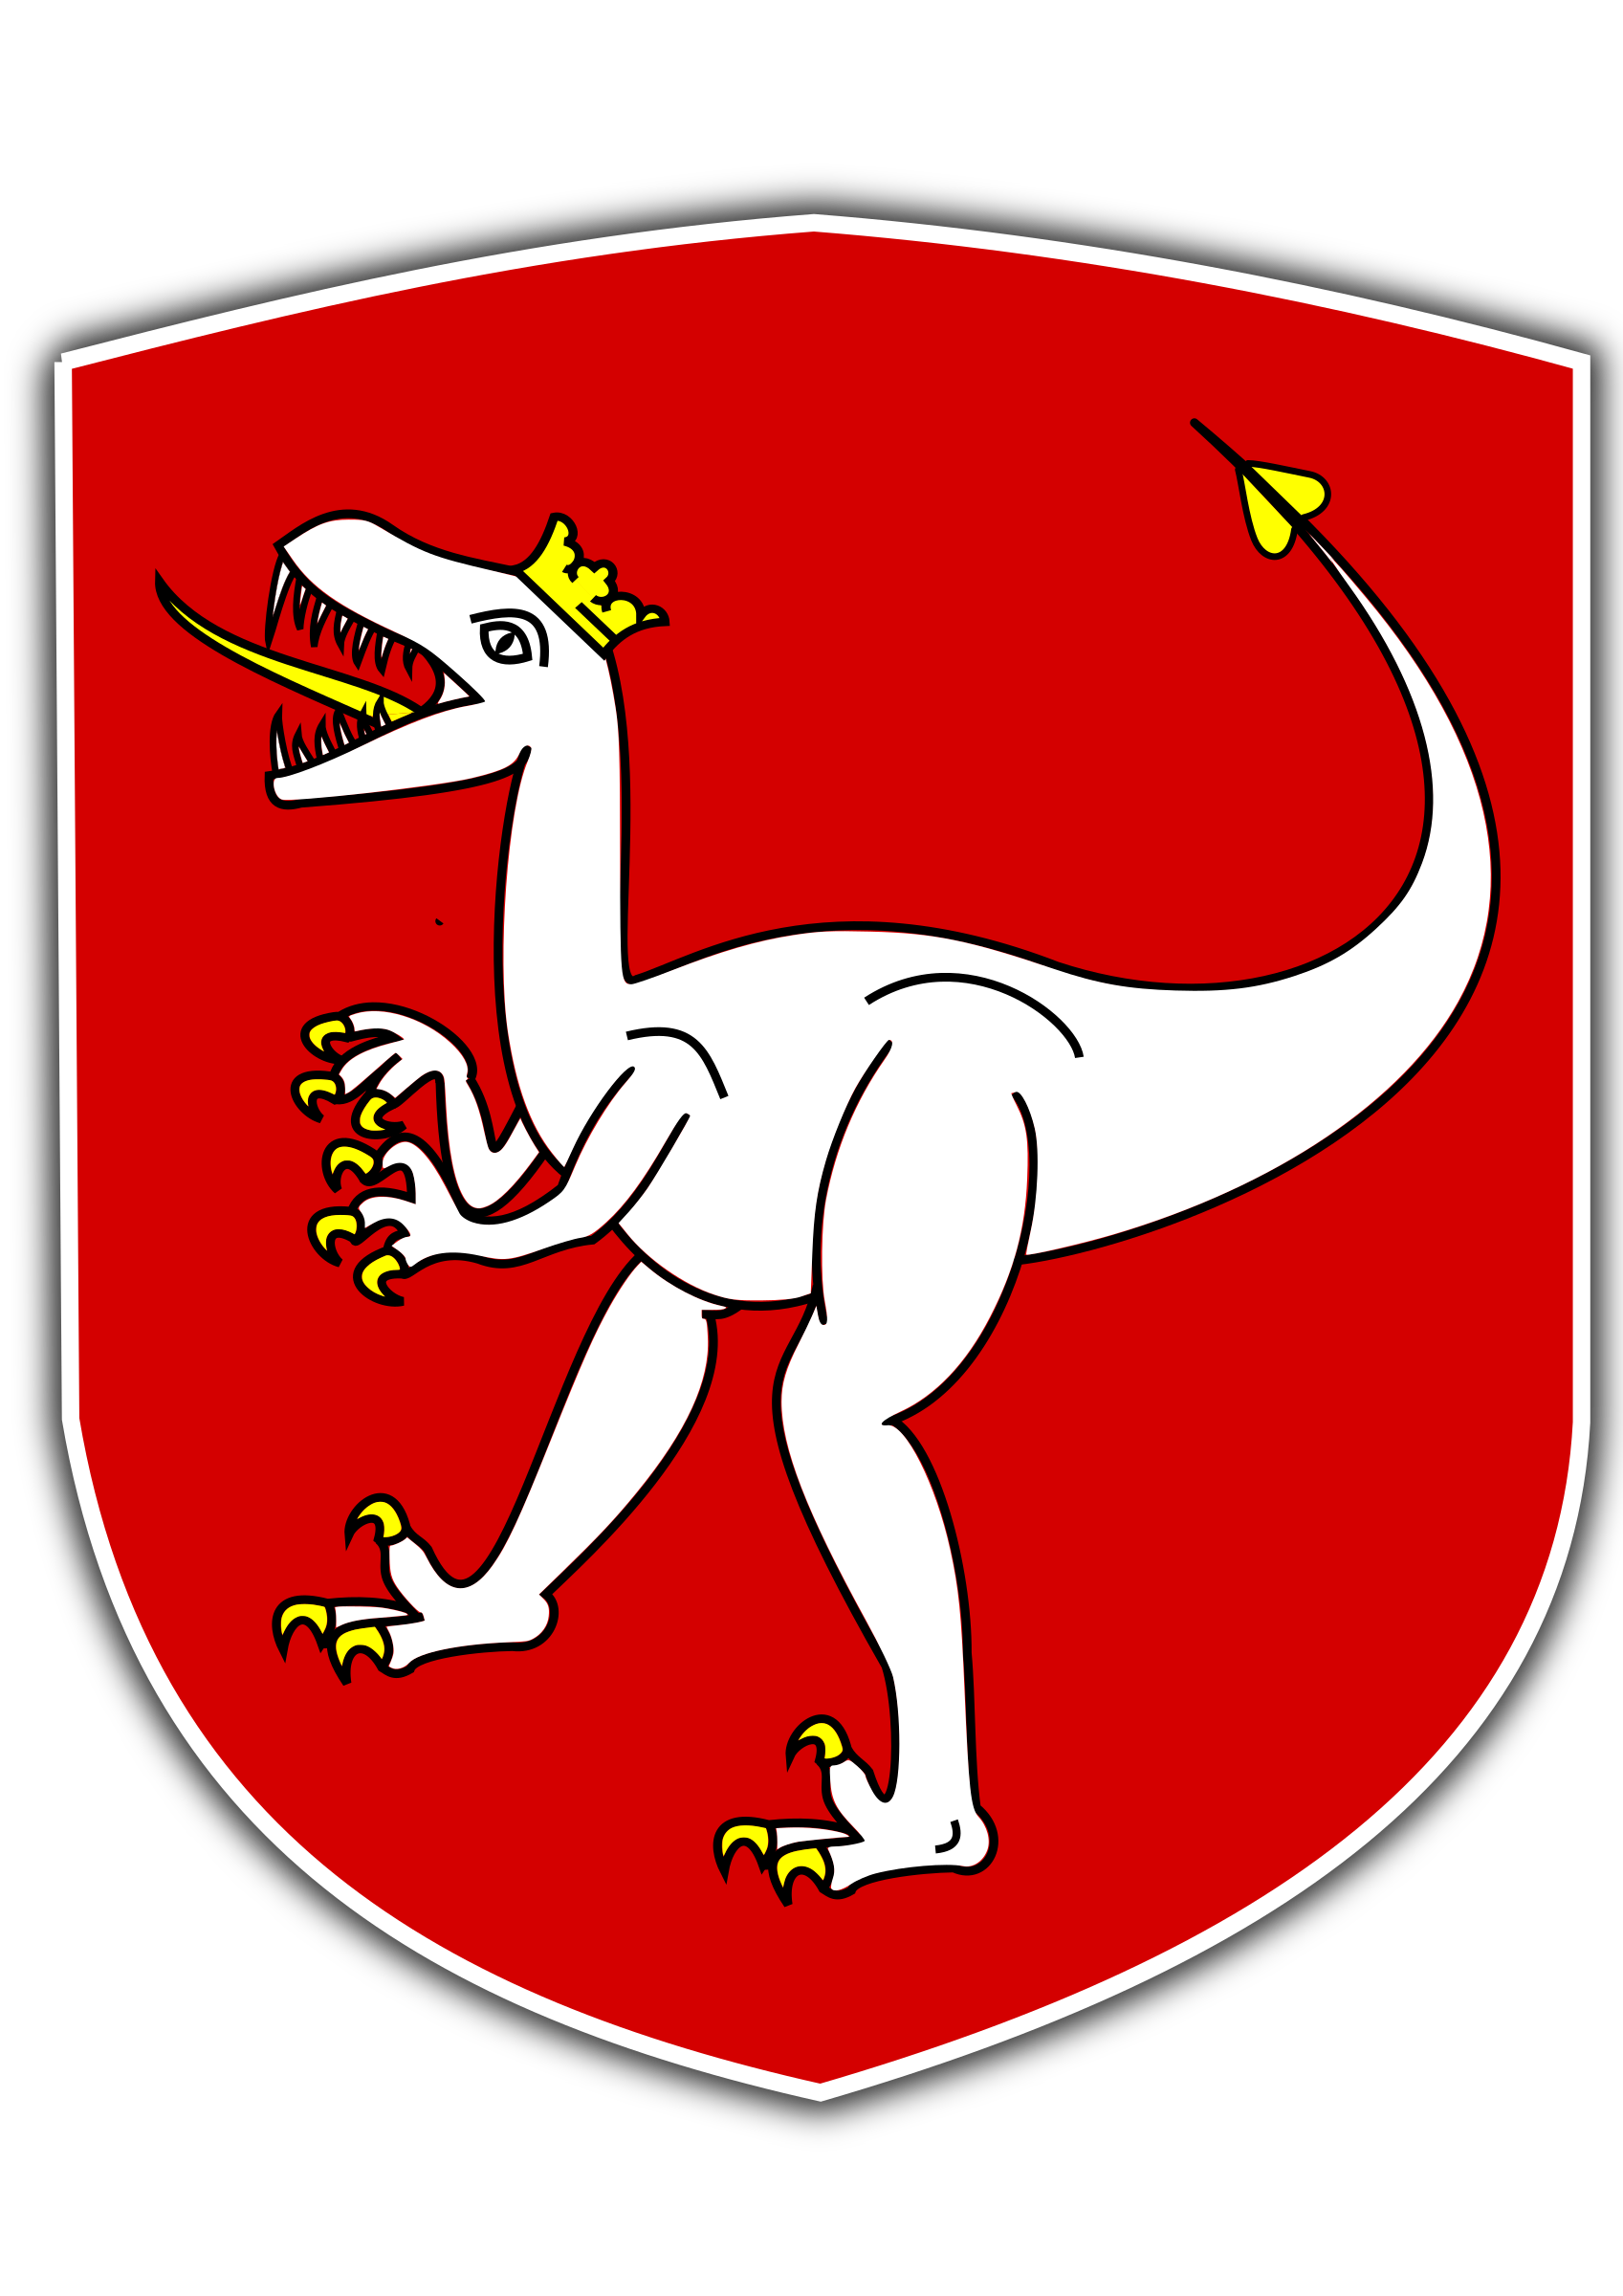 Czech Dino by usiiik